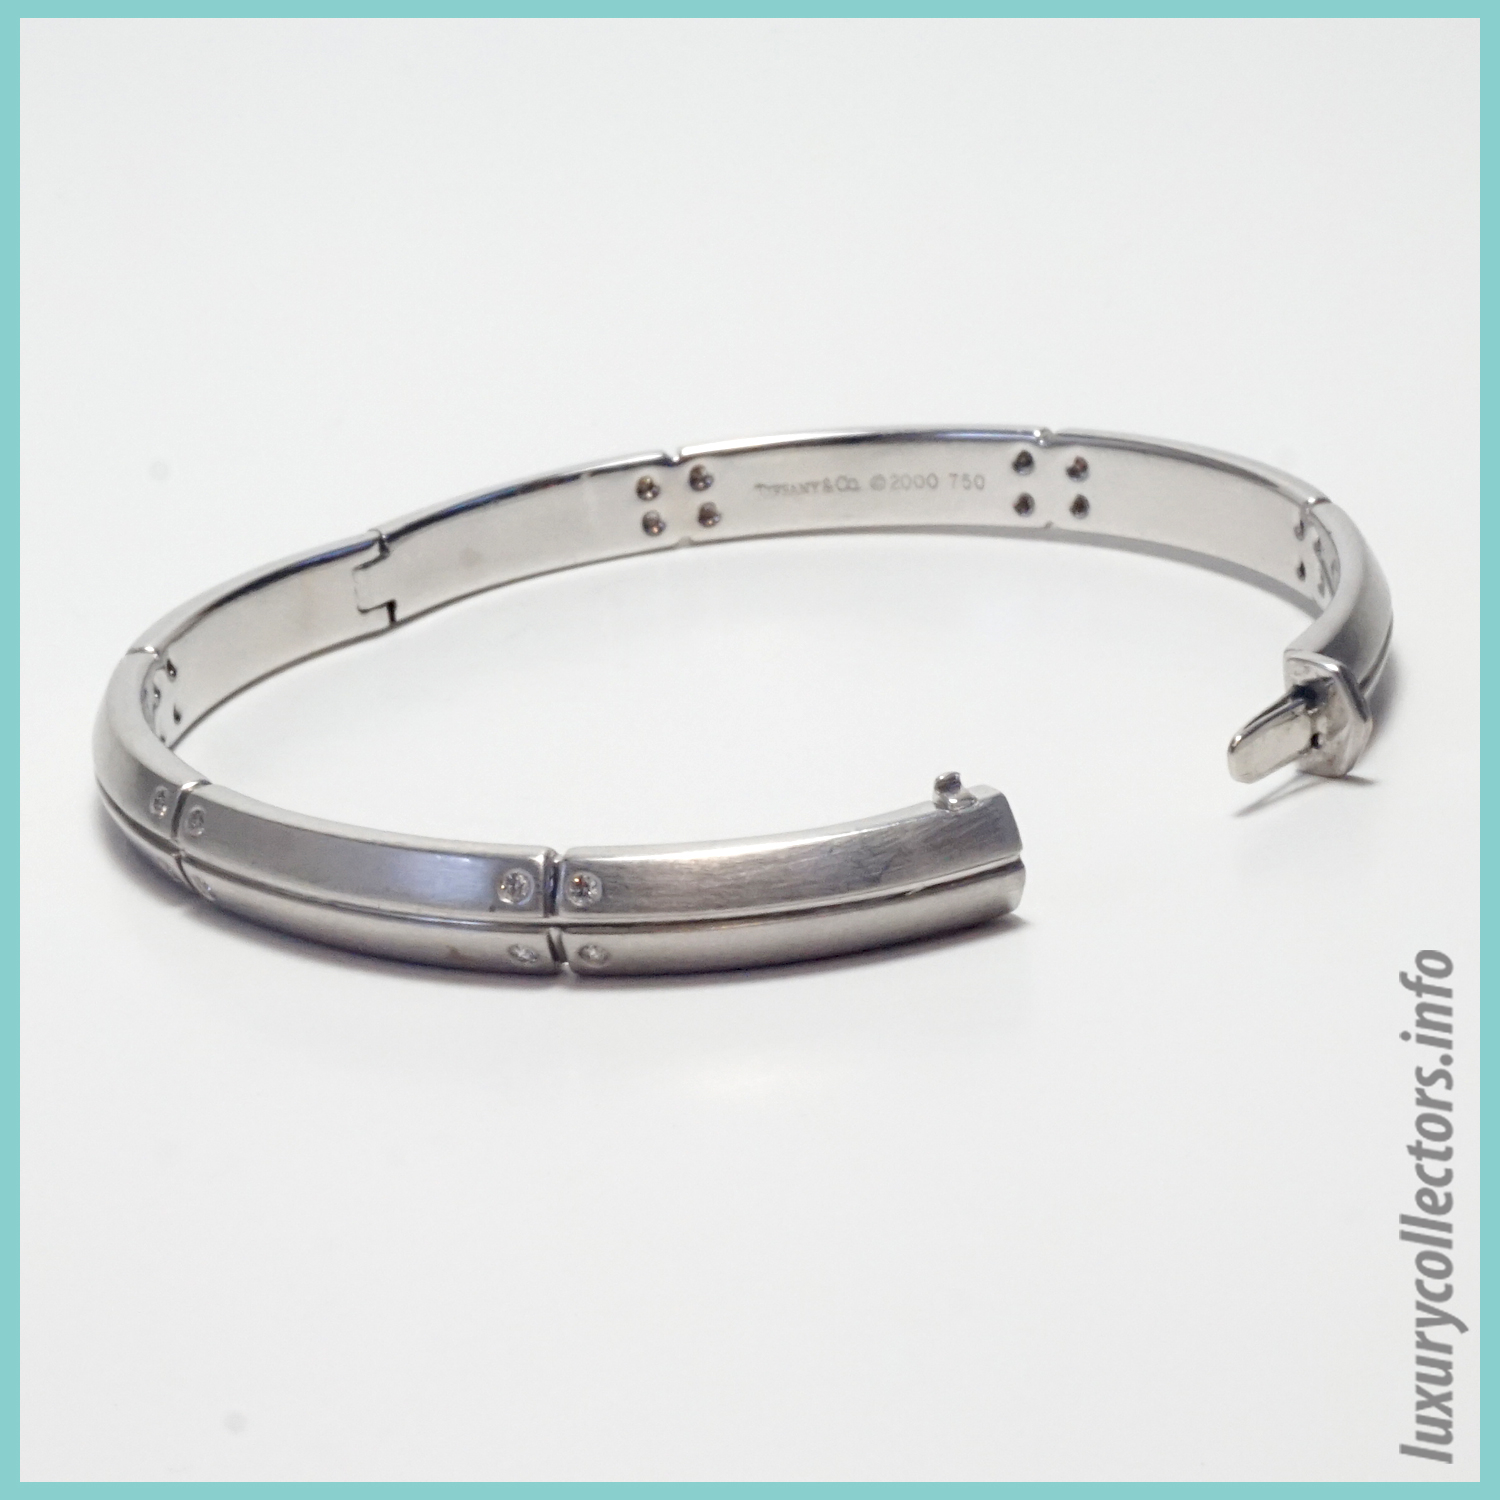 Tiffany & Co. Streamerica 18K White Gold Collection Diamonds 2000 2002 Bangle Bracelet Stamped open mechanism latch